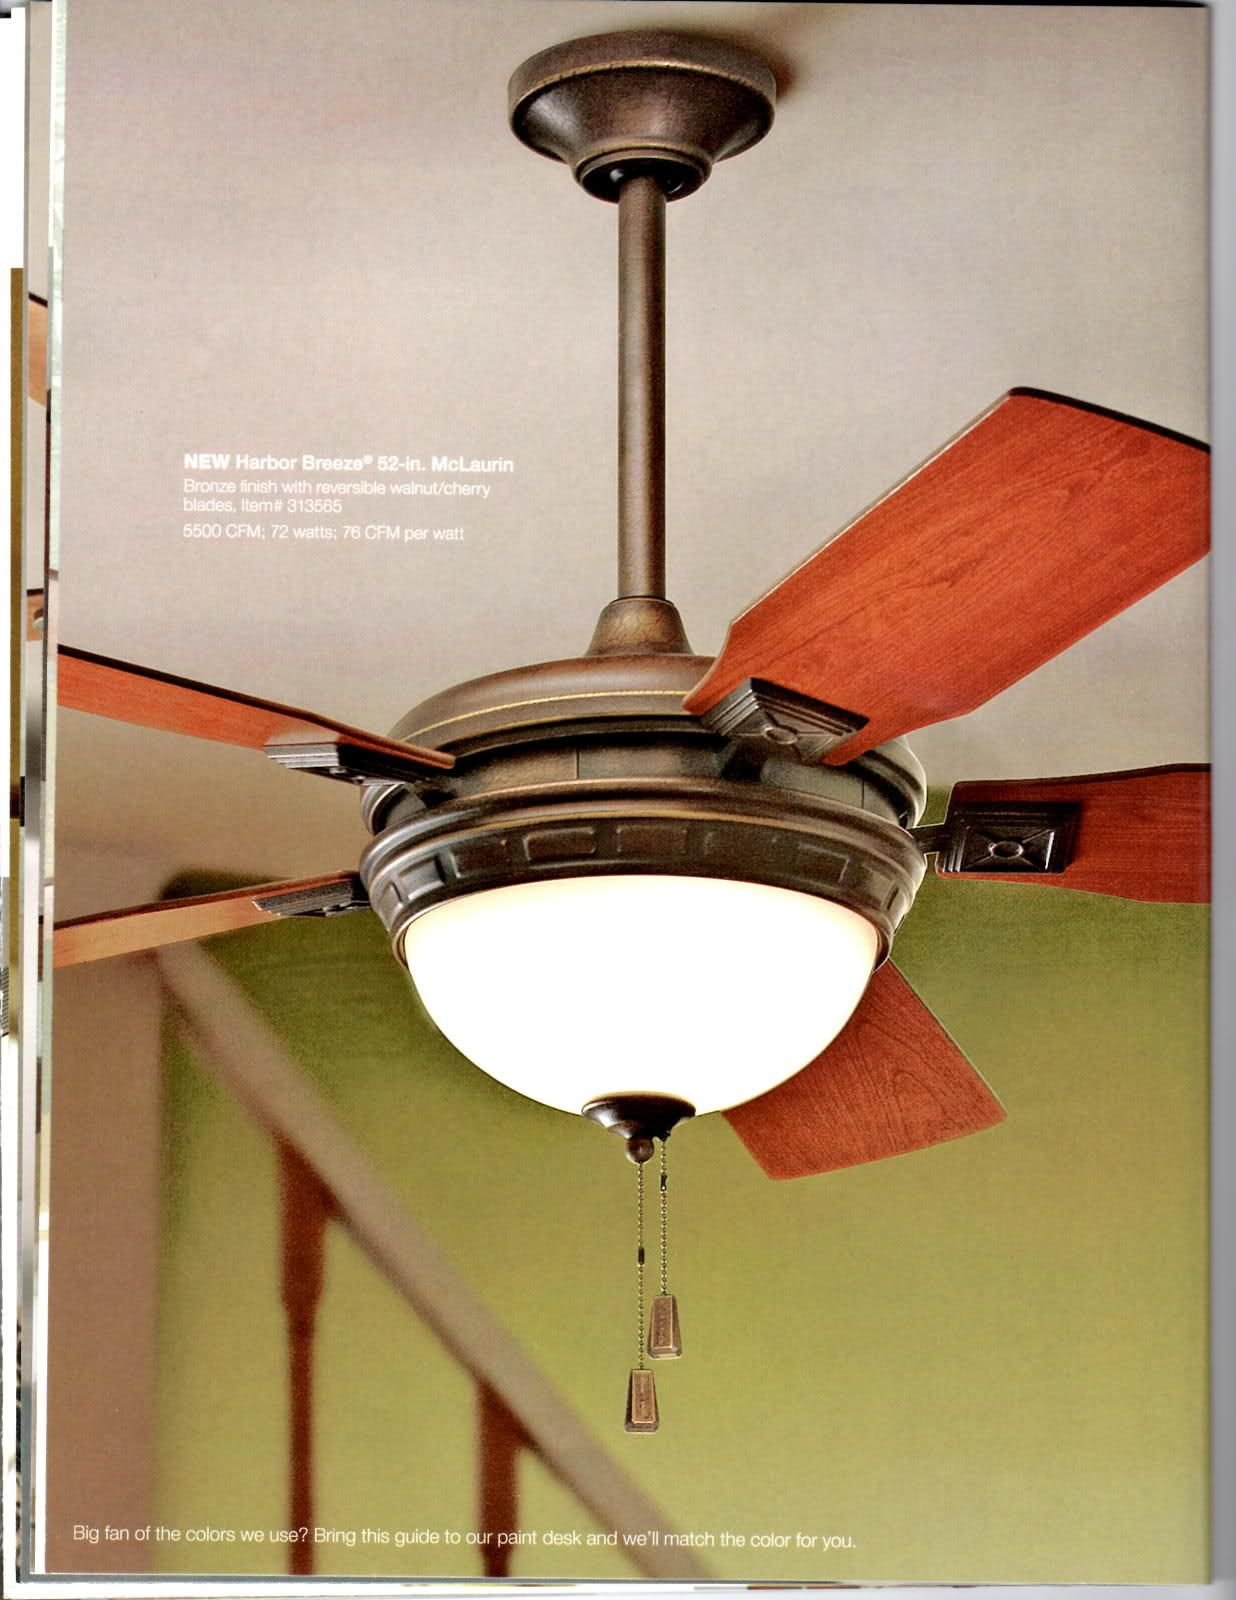 luxury nickel altura fans fan fresh of about lowes weird brushed ceiling